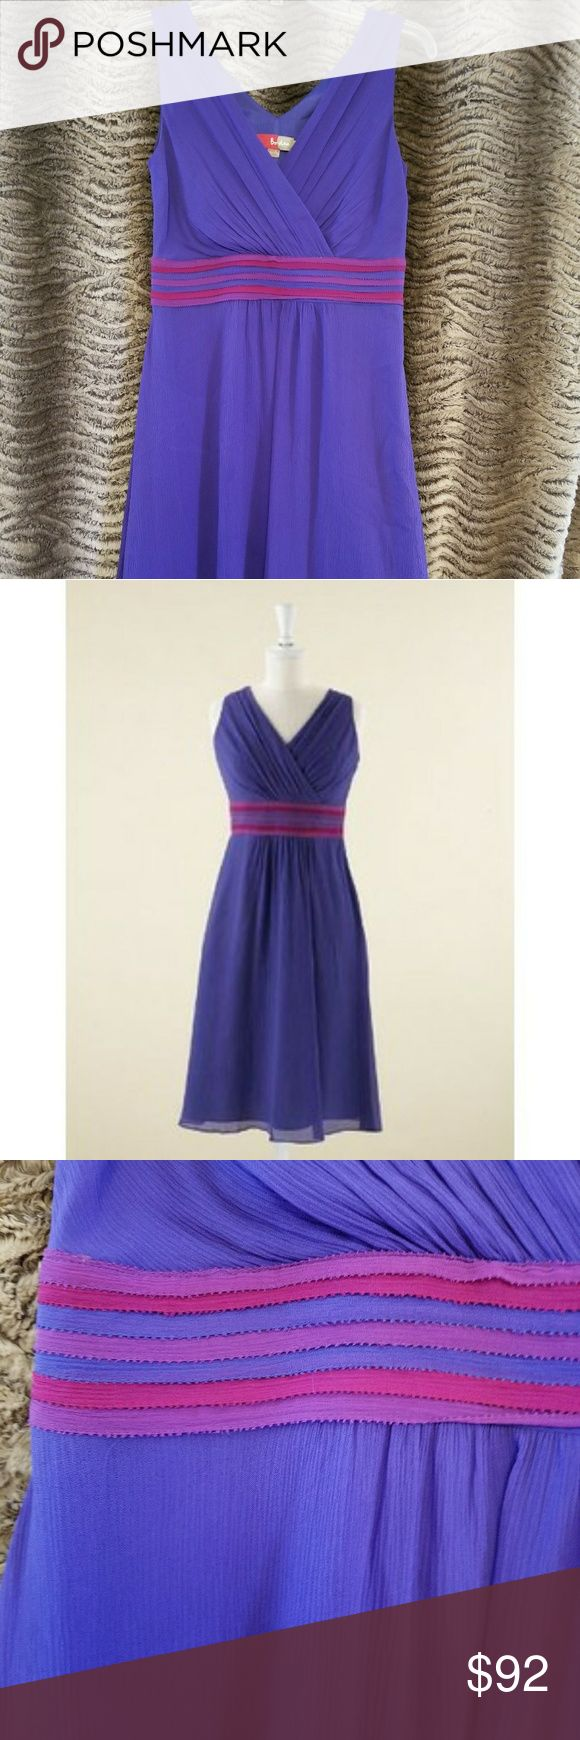 Gorgeous purple Boden  dress 6R EUC This is the most gorgeous shade of purple! Colour block Party Dress-WH196-Below Knee - Boden Retails: $198 Size 6R Boden Dresses